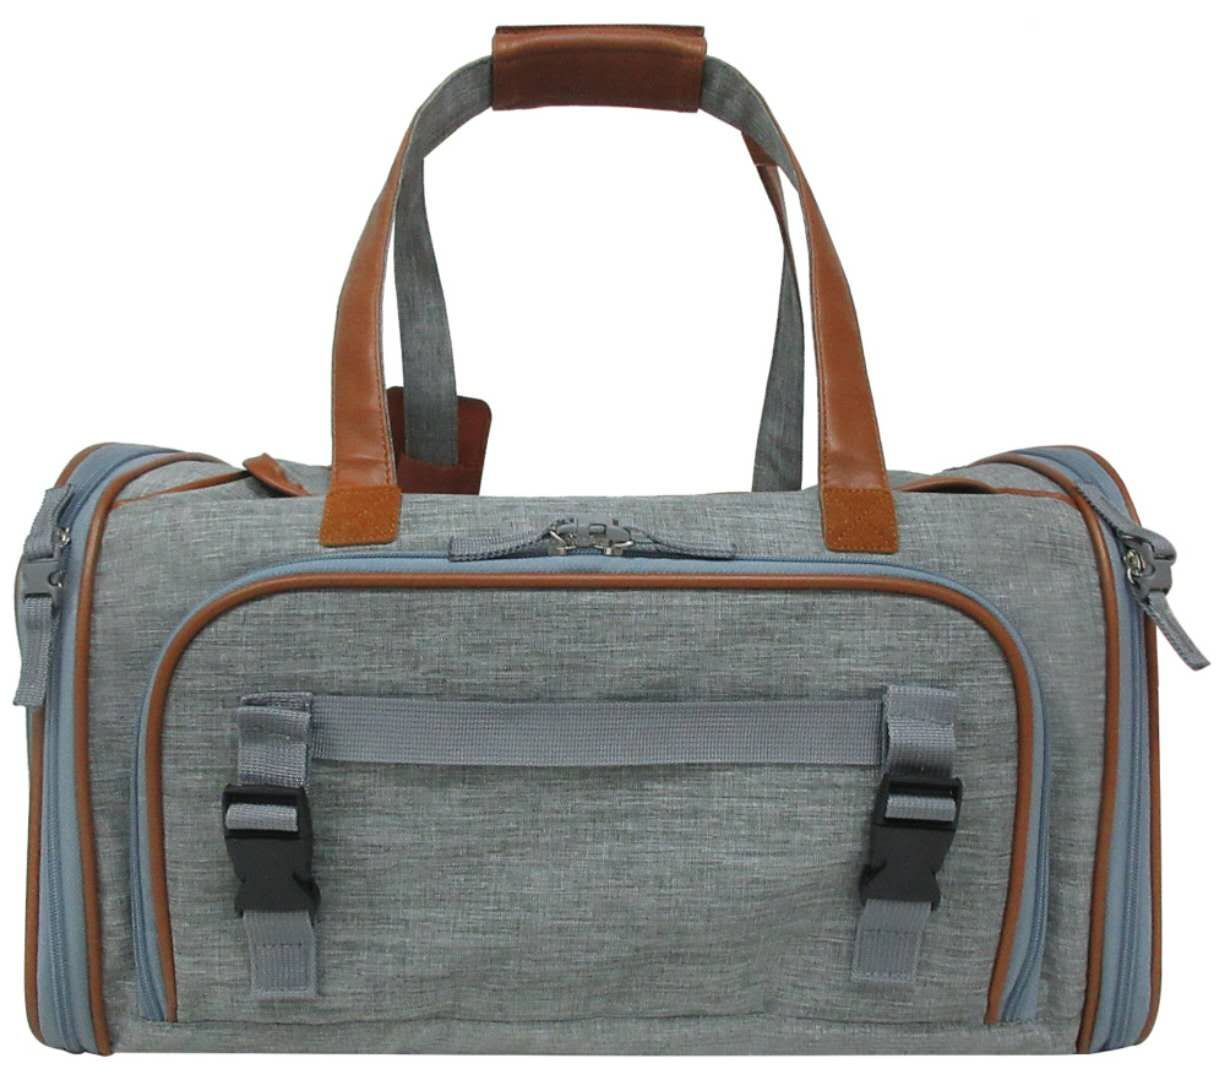 1f5397cea0bc Expandable Airline Approved Soft Sided Pet Carrier by Mr. Peanut's  (Platinum Gray)